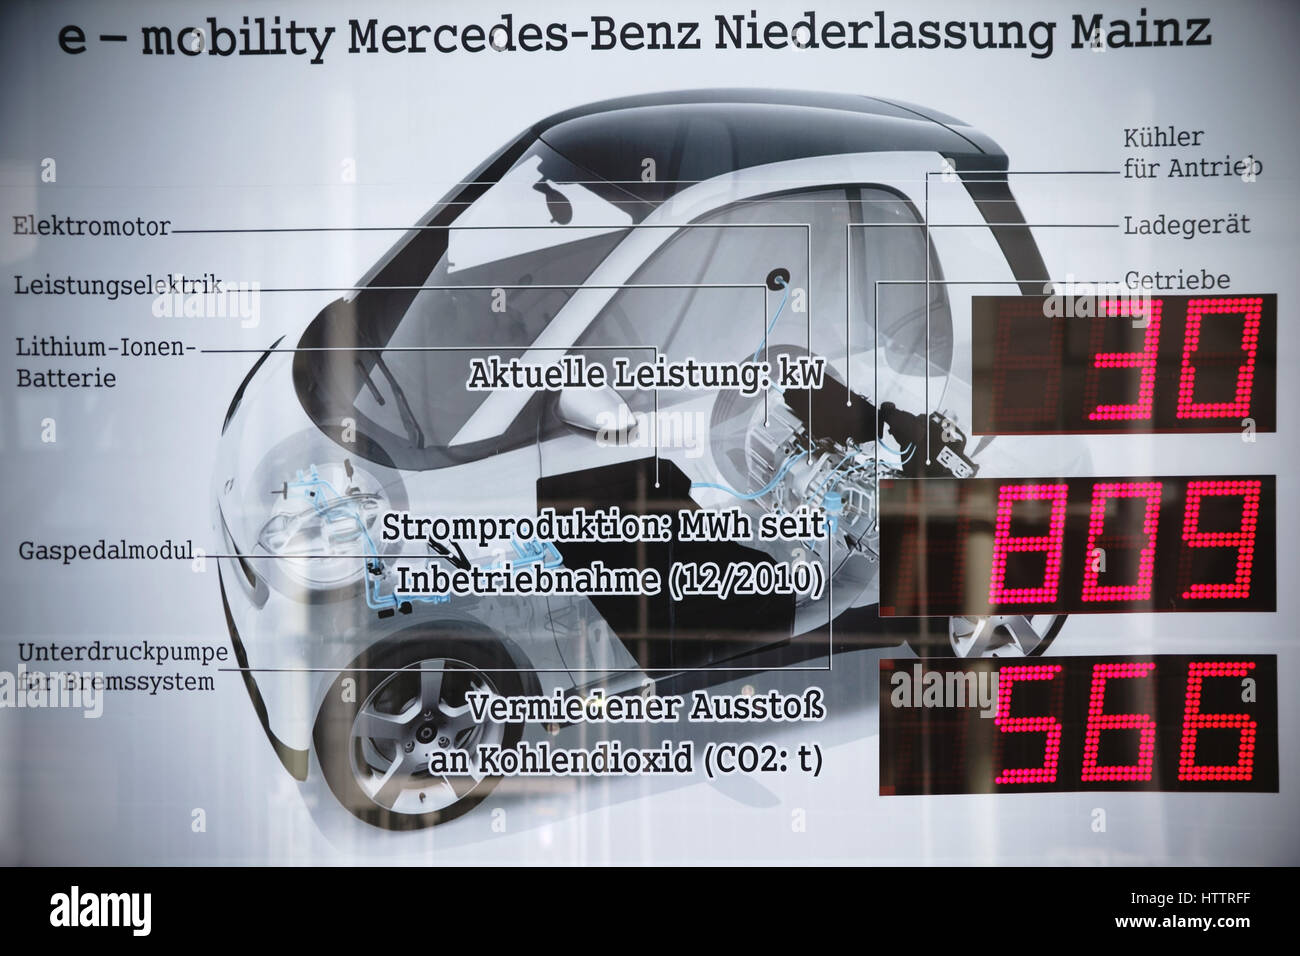 Mainz, Germany - March 10, 2017: The diagram of a smart automobile with